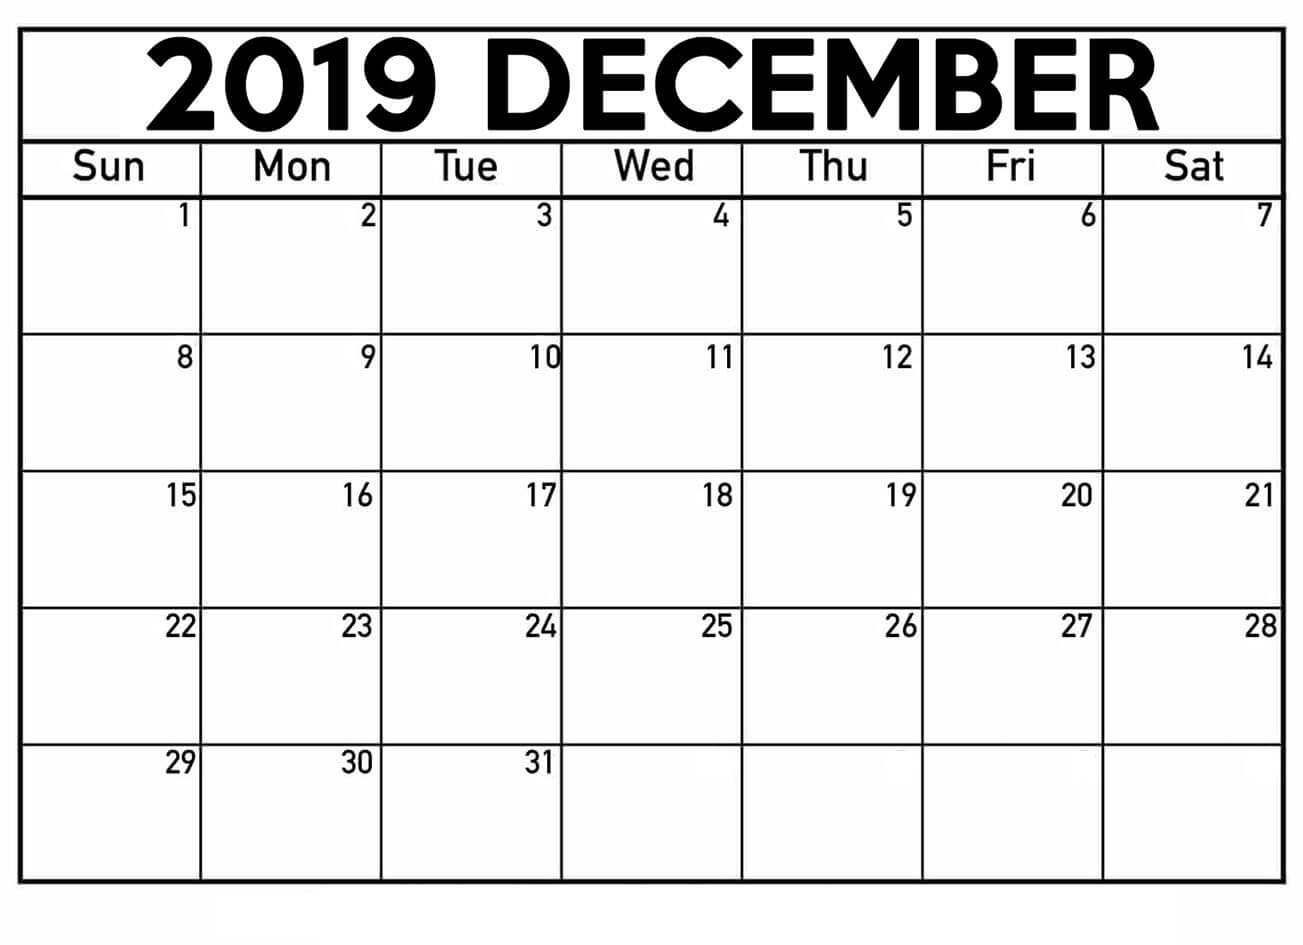 December 2019 Calendar Printable Waterproof Paper